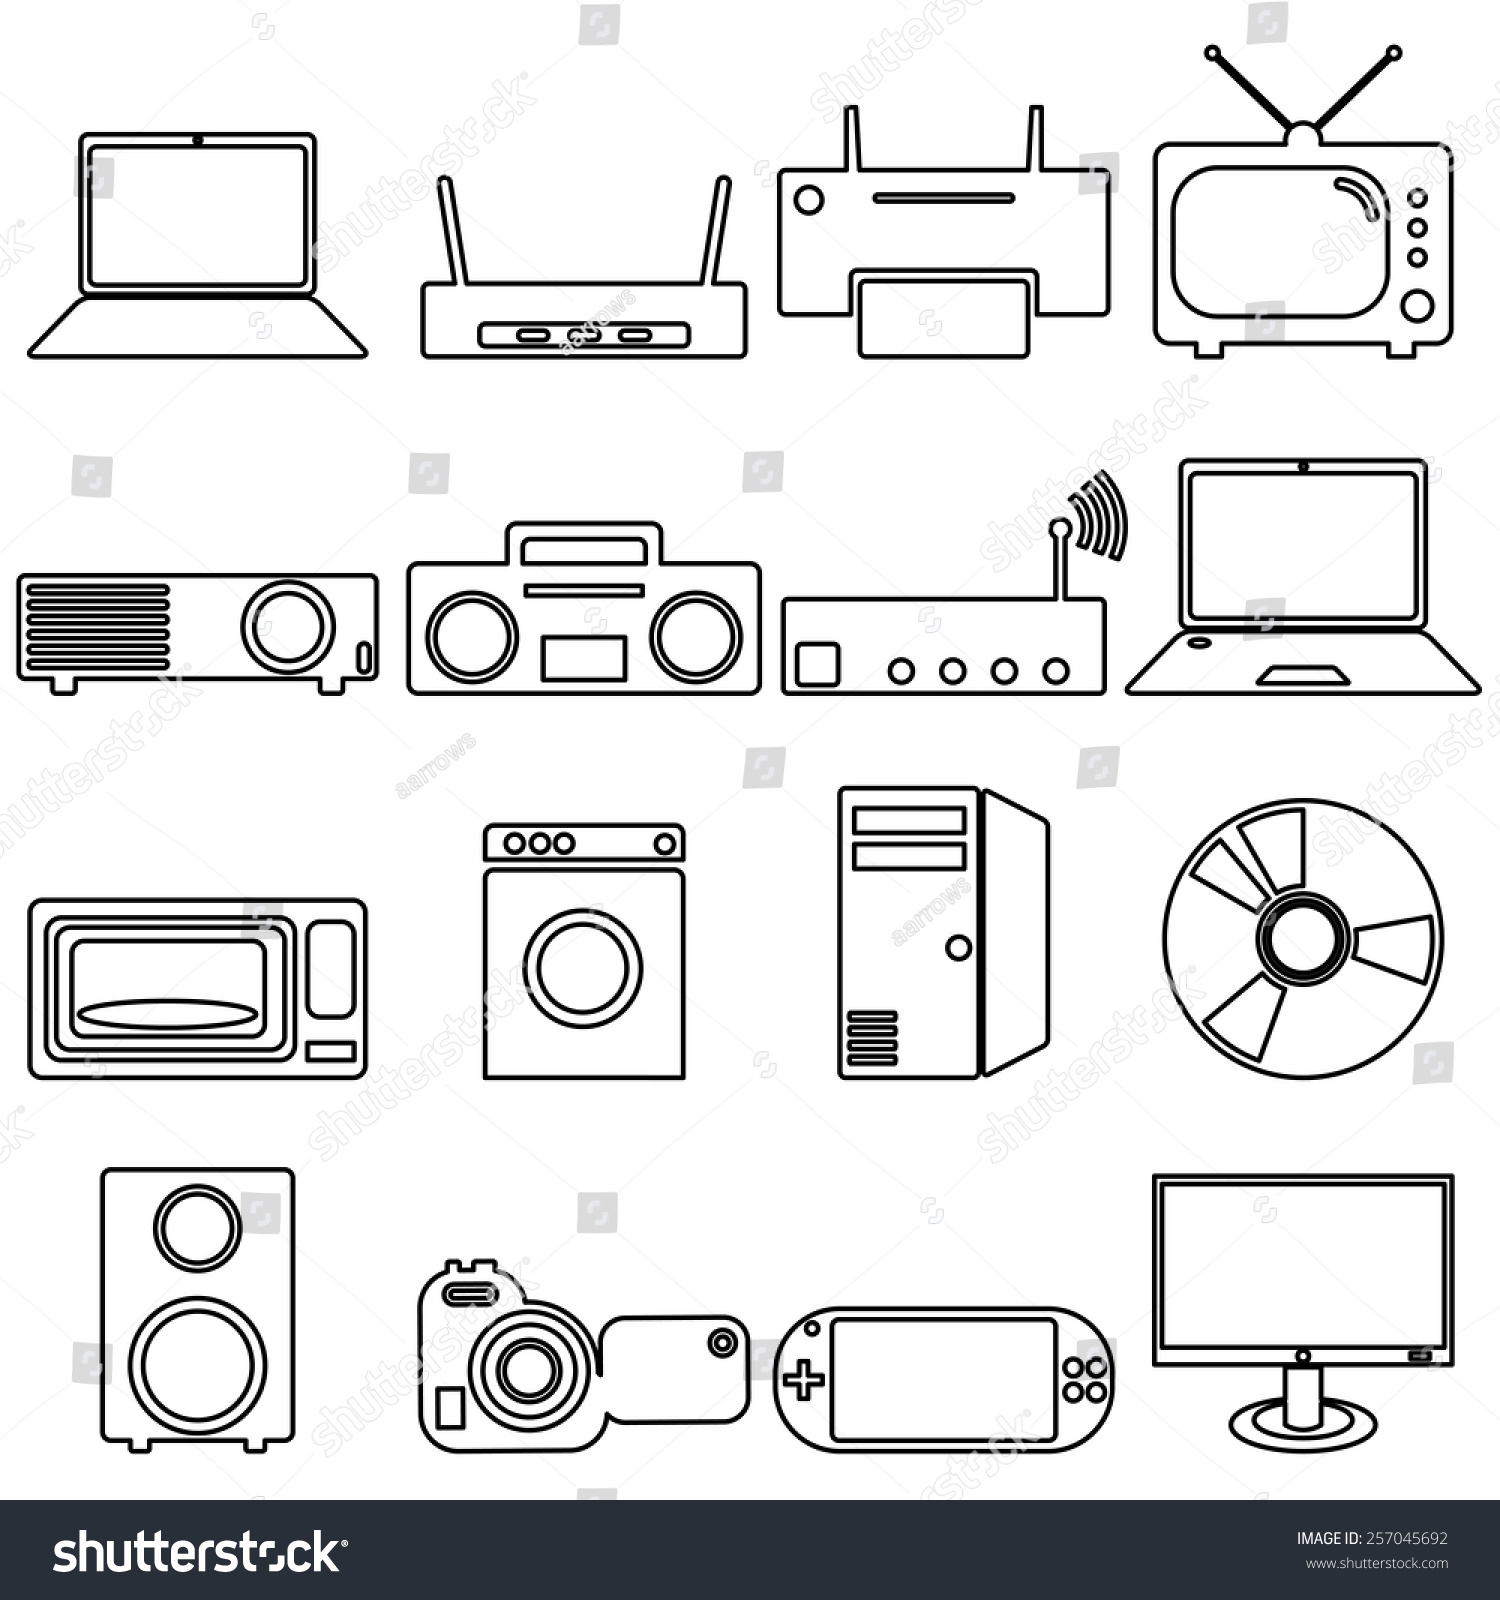 Magnificent Symbols Of Electrical Devices Picture Collection